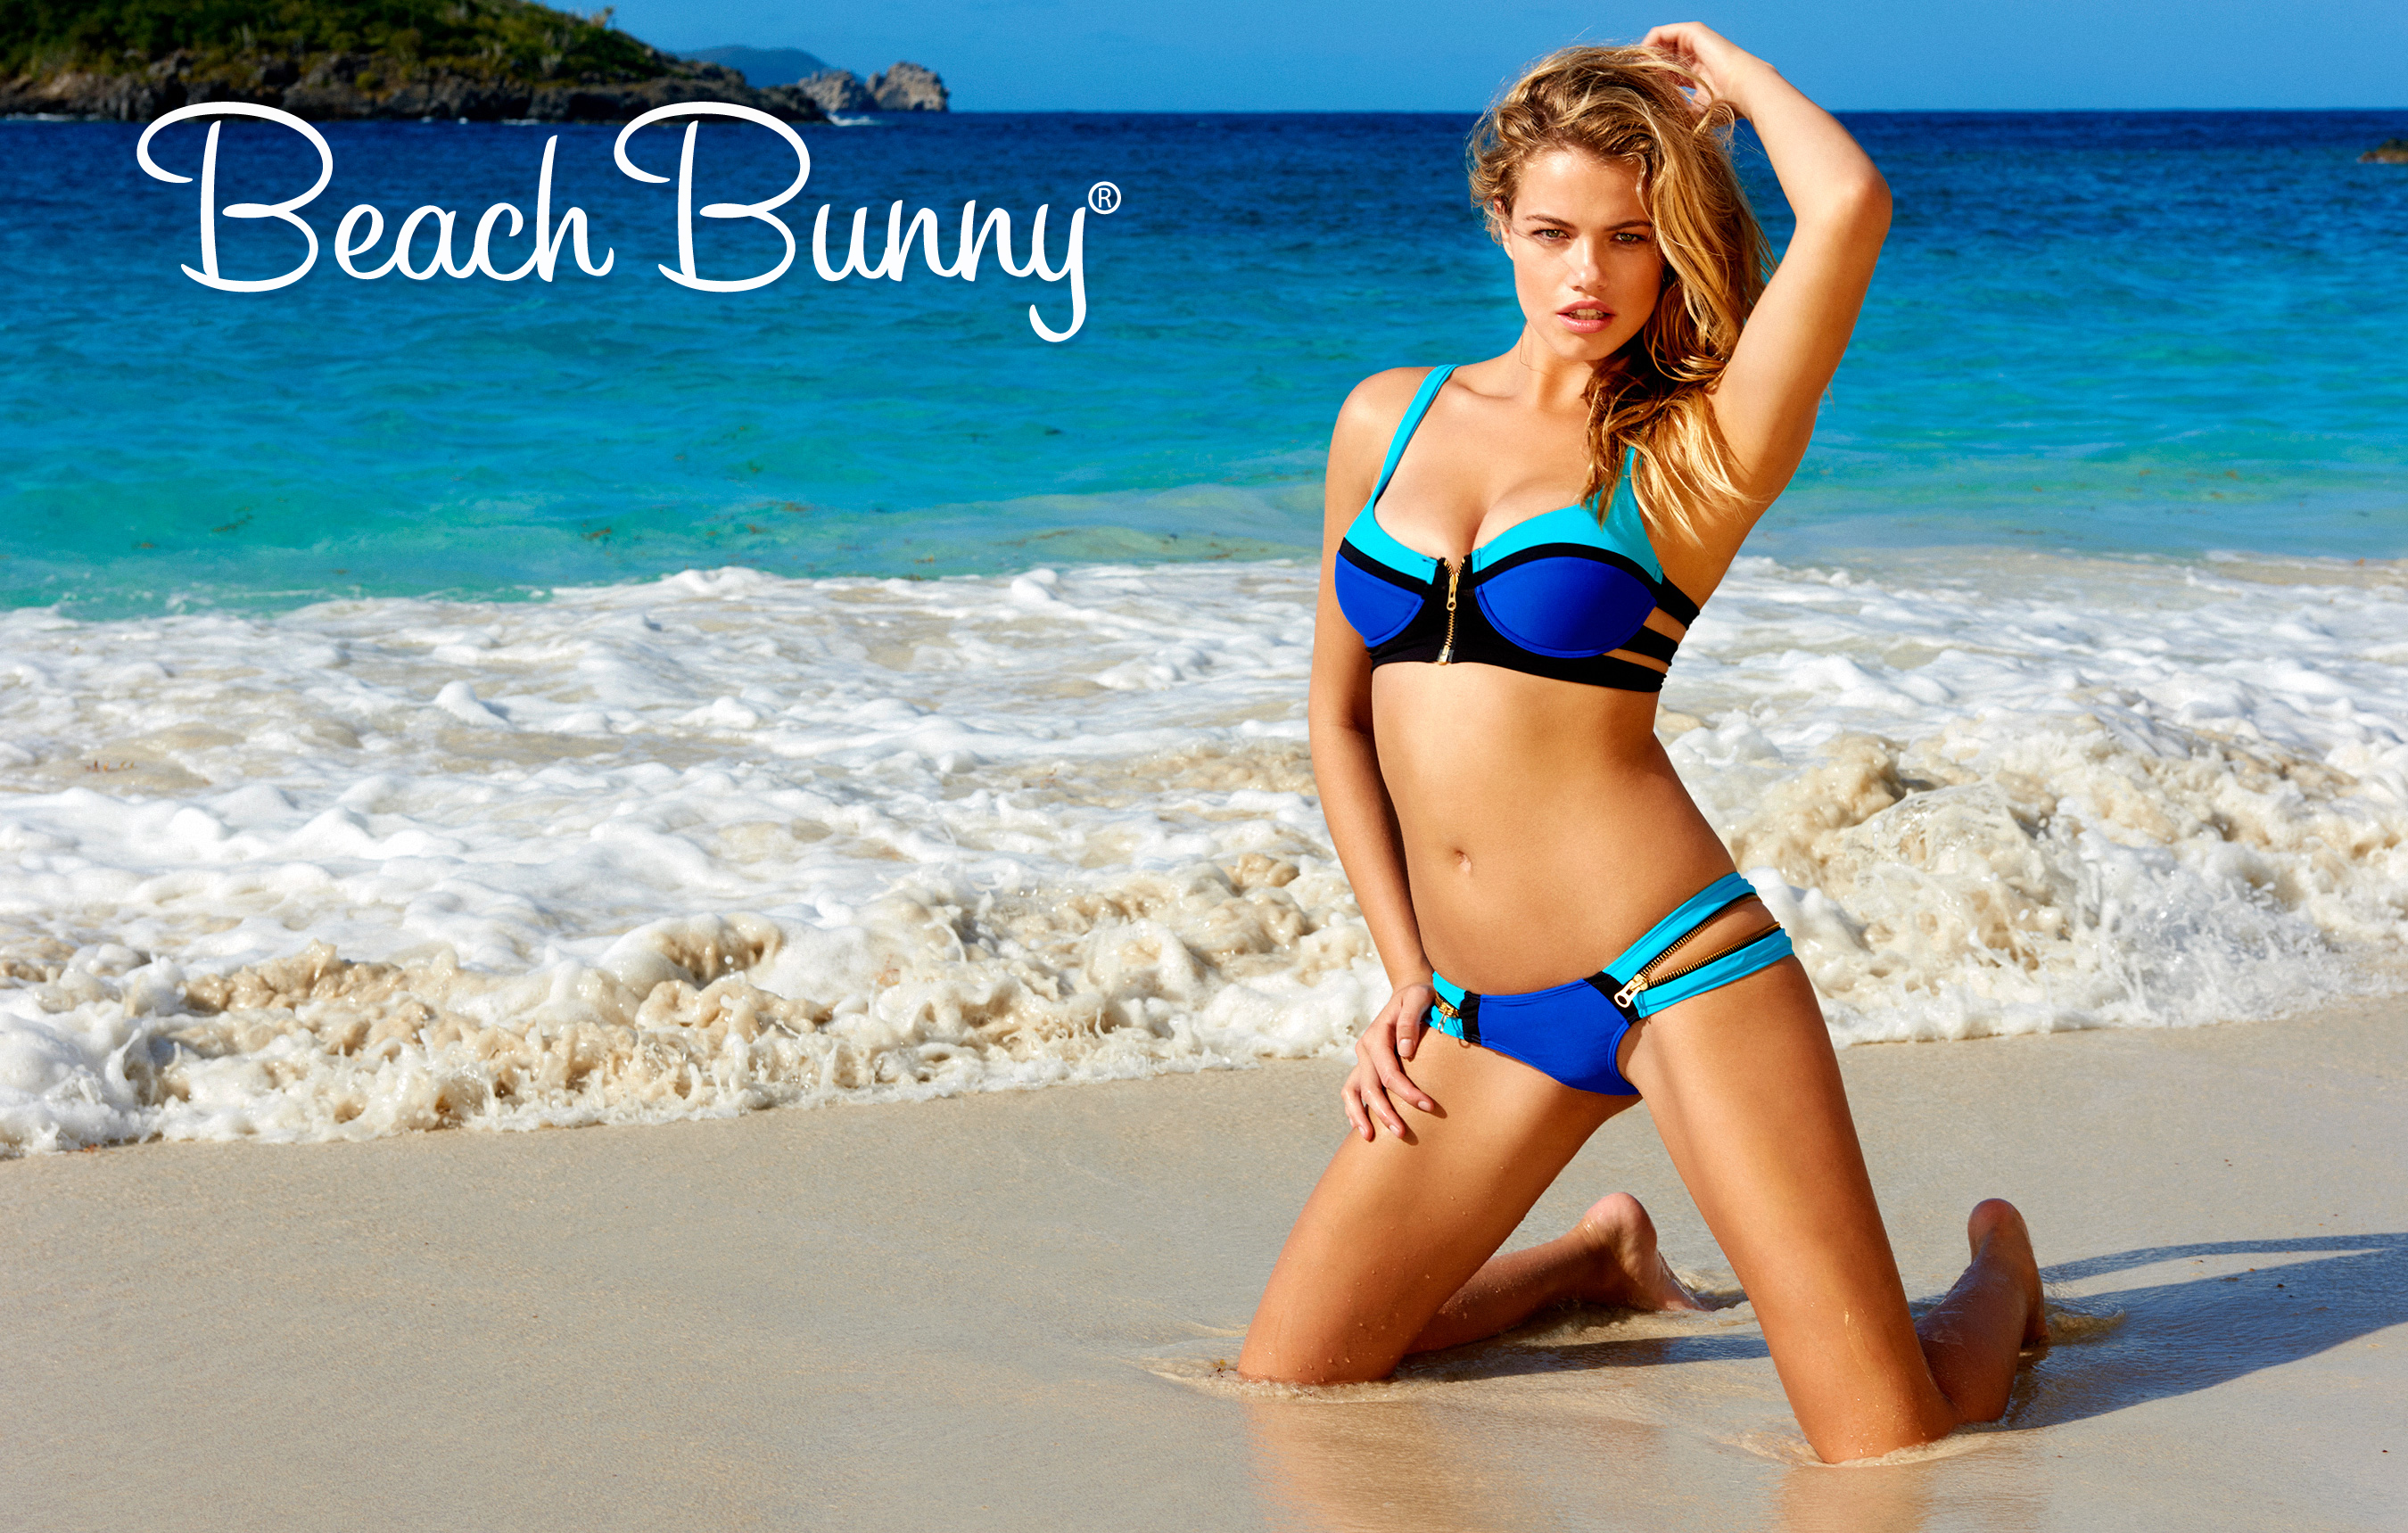 Beach Bunny Swimwear Releases Spring 2015 Campaign With Nina